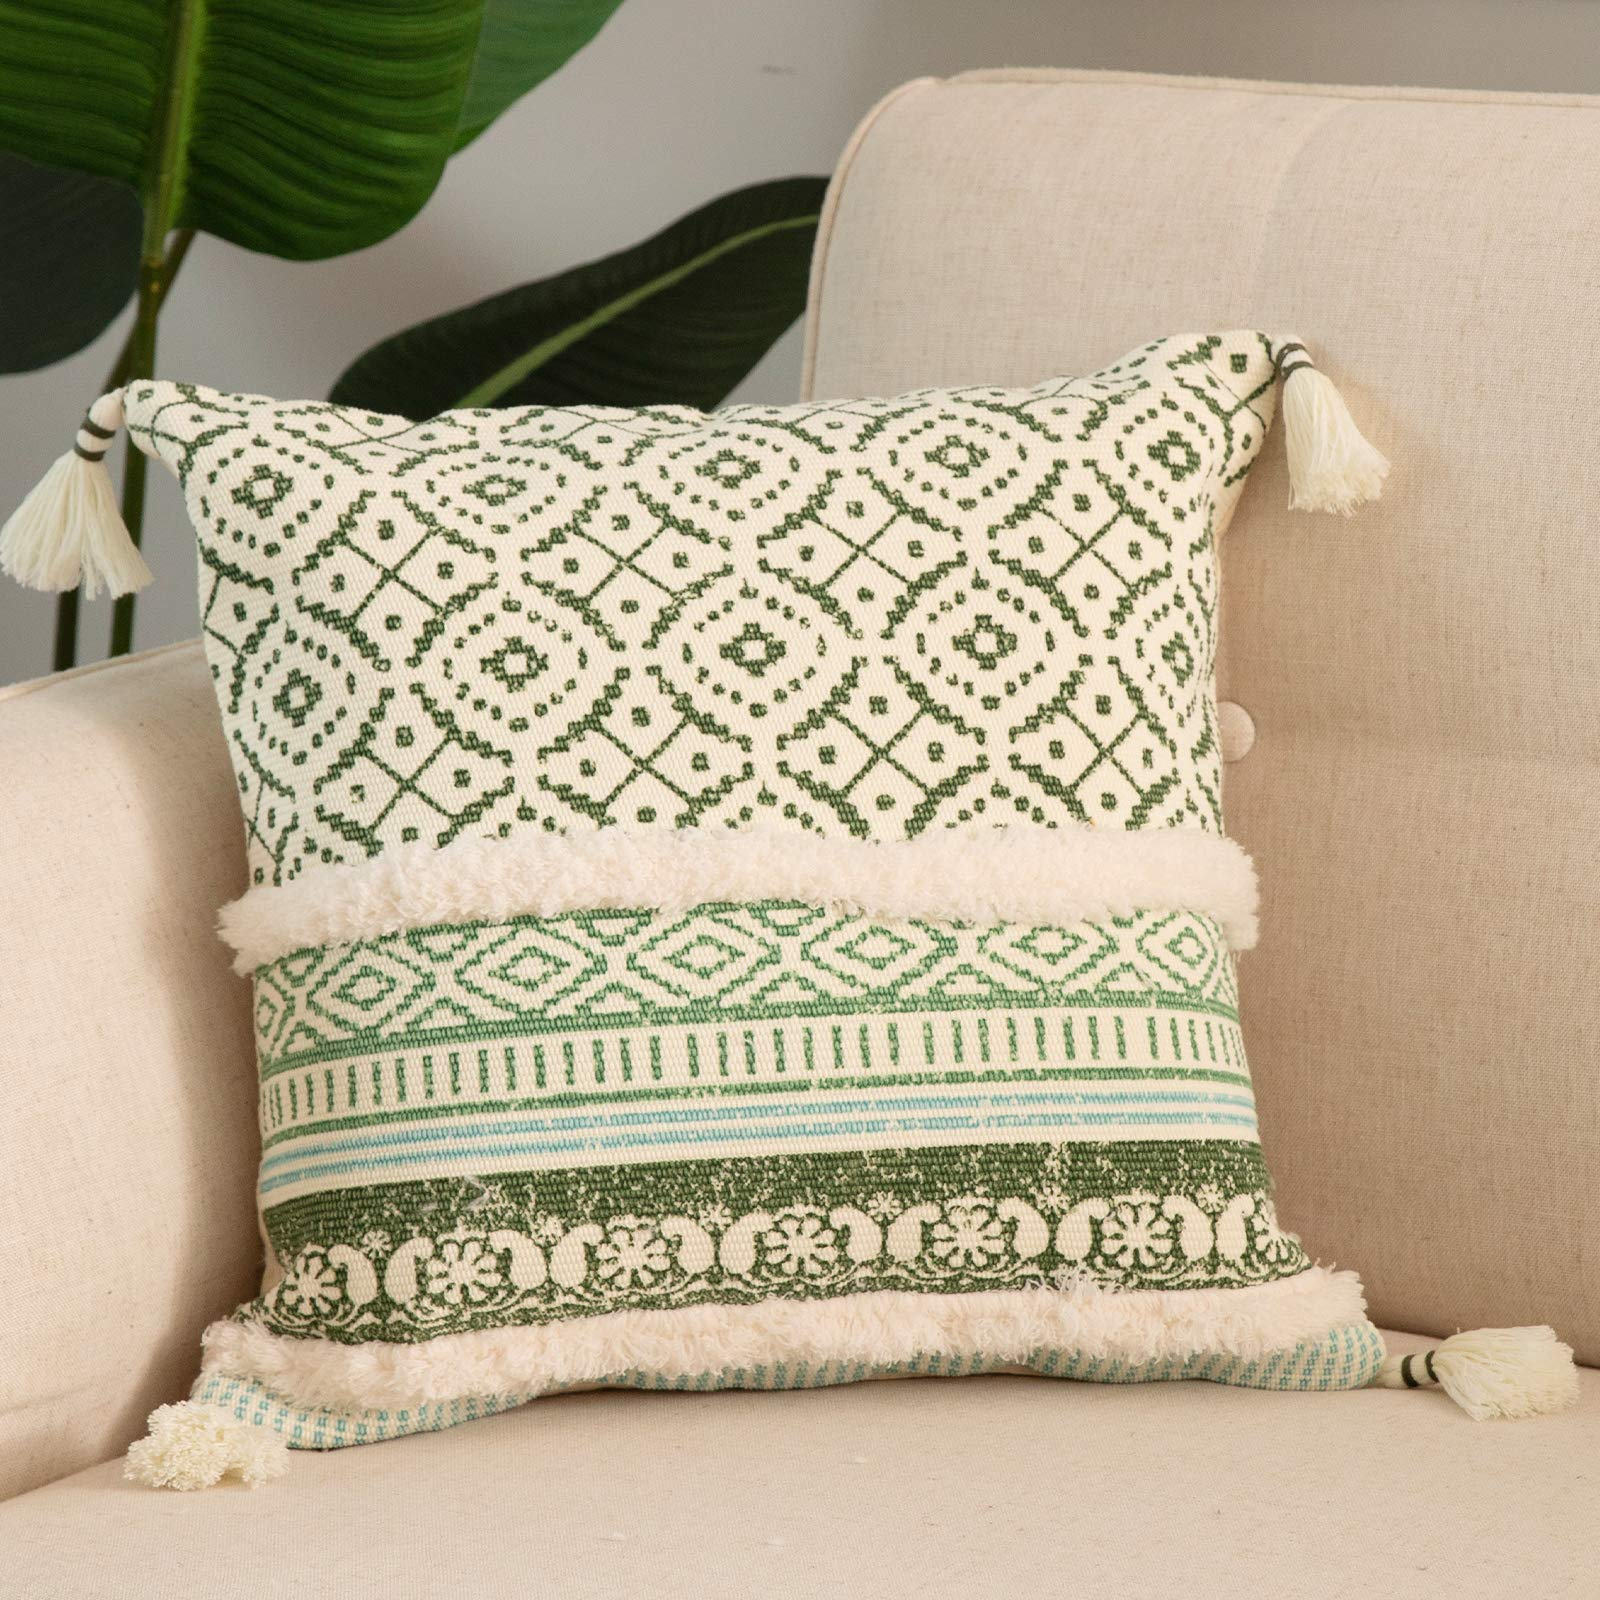 blue page Boho Tufted Decorative Throw Pillow Covers for Couch Sofa - Modern Moroccan Style Pillow Cases with Tassels, Accent Decor Pillowcase for Bedroom Car Hotel, 18x18 Inches, Green